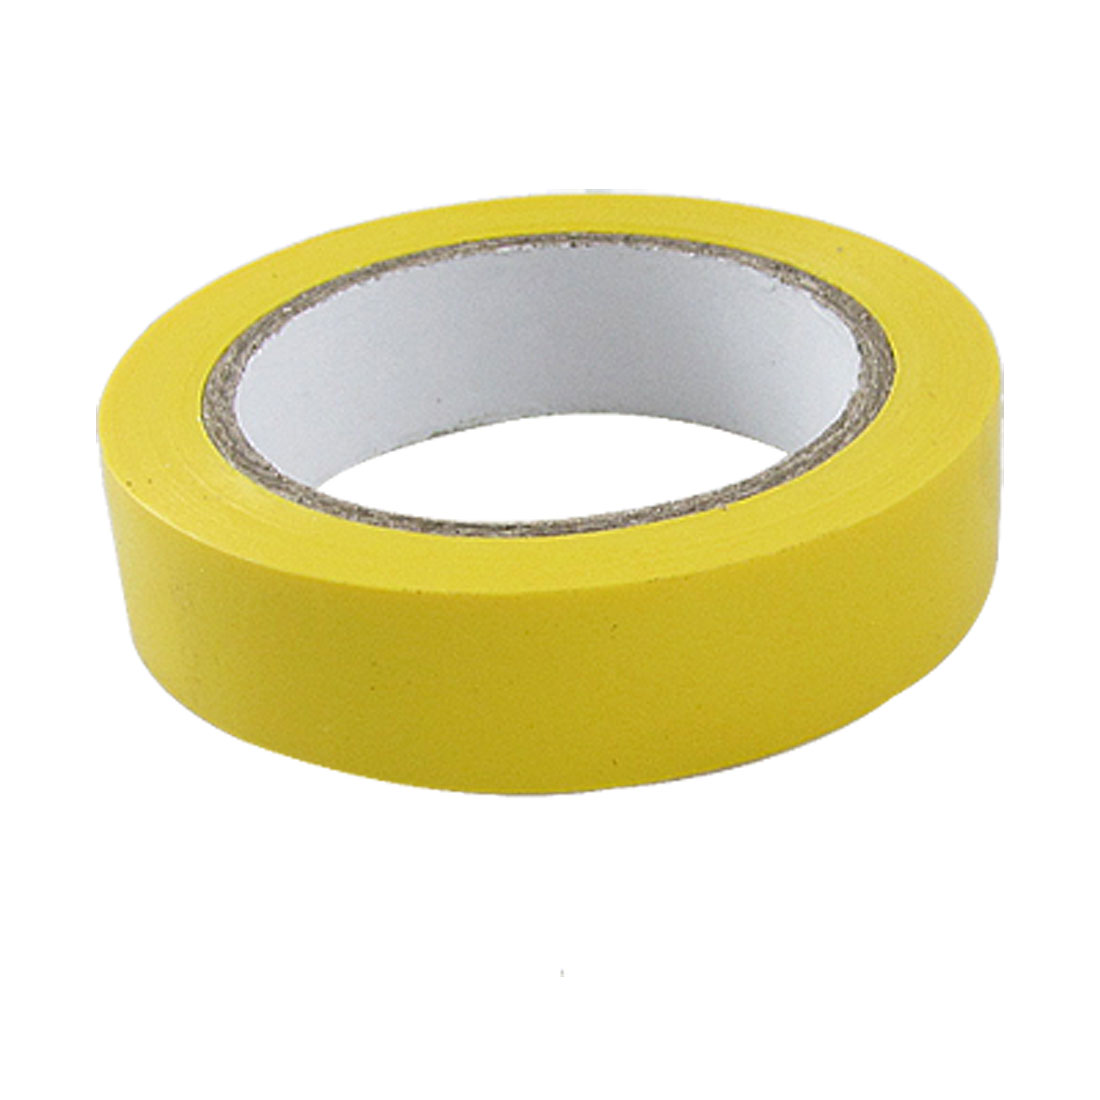 71mm x 17mm Yellow PVC Self Adhesive Electrical Insulation Tape